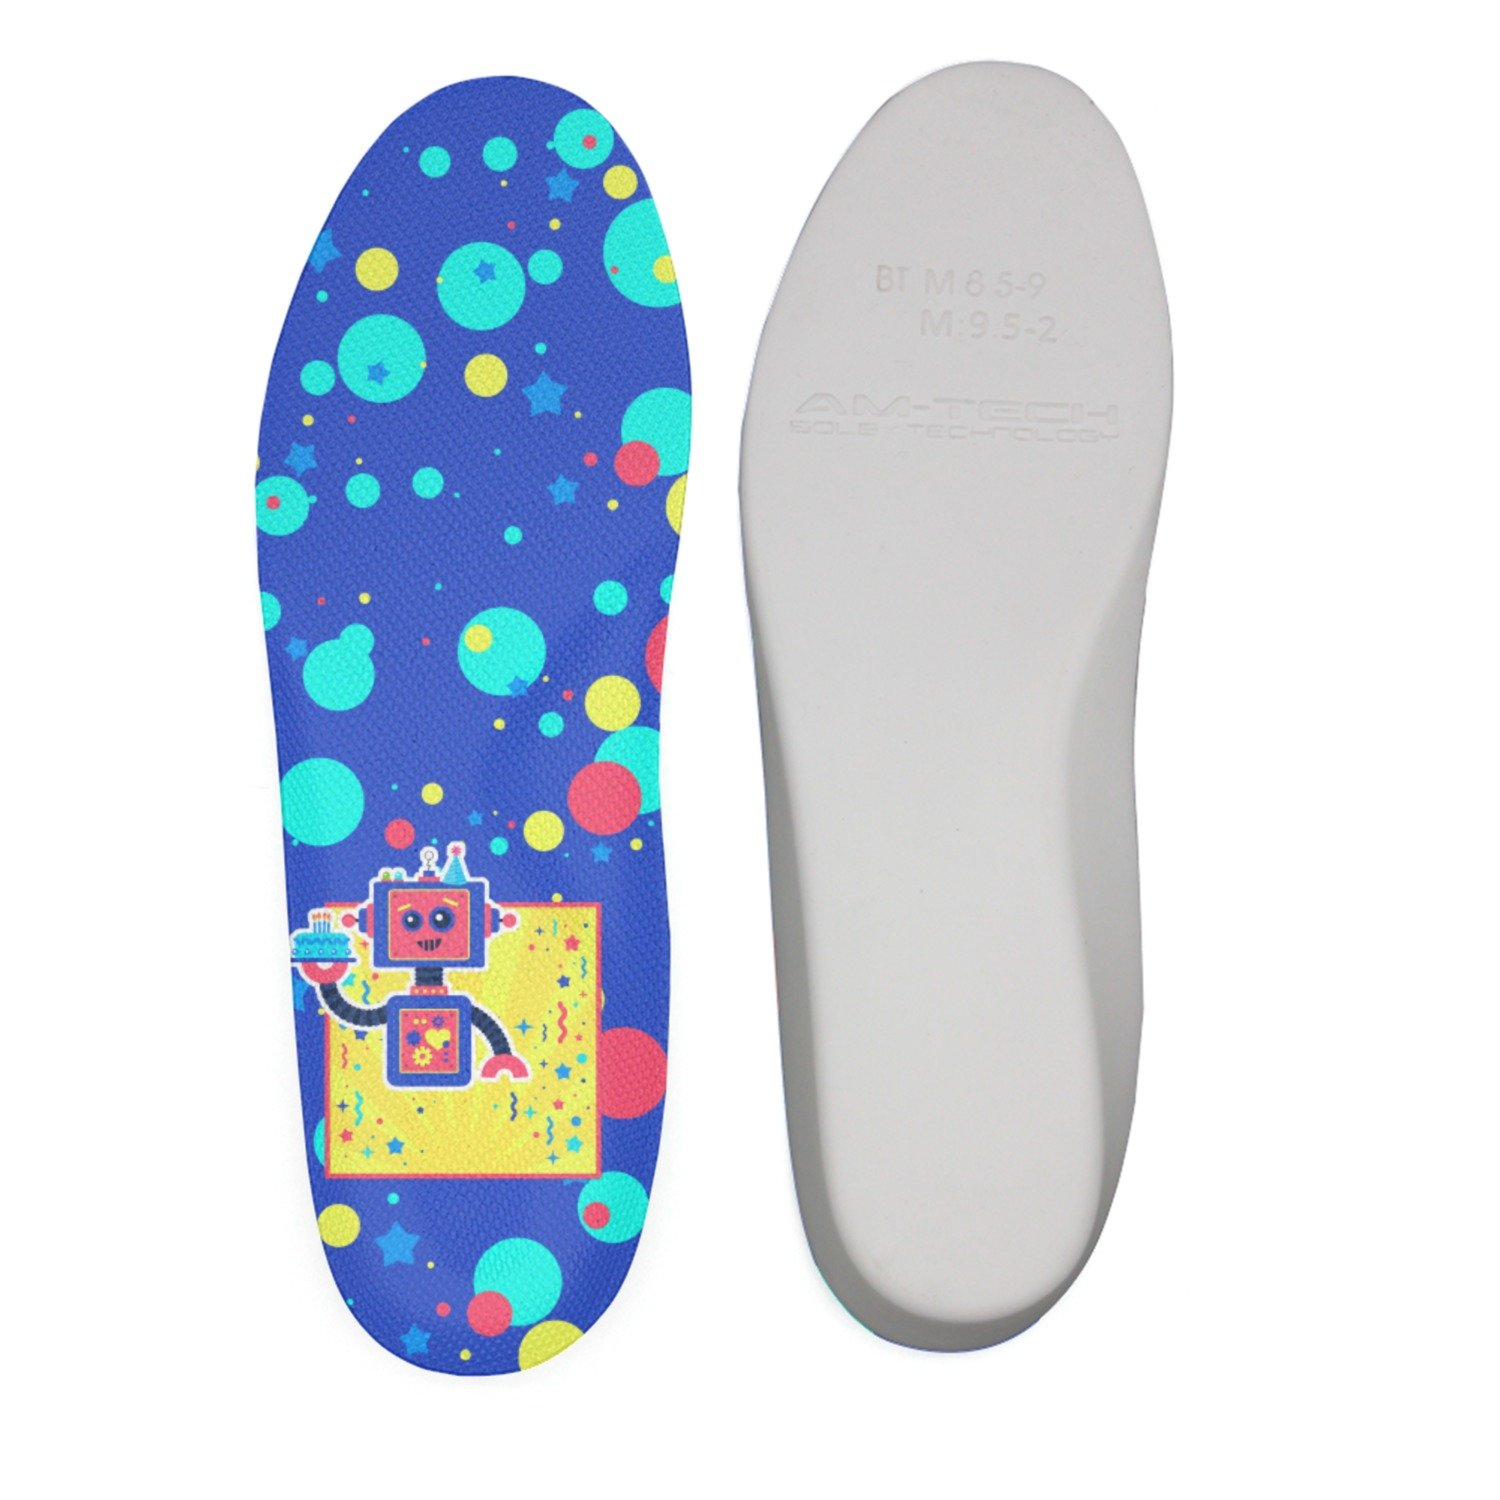 Ether Dobbin Retro Robots In Space Sci-Fi Robotics Comfort Antimicrobial No Stink Insole Full Length Shoe Insole